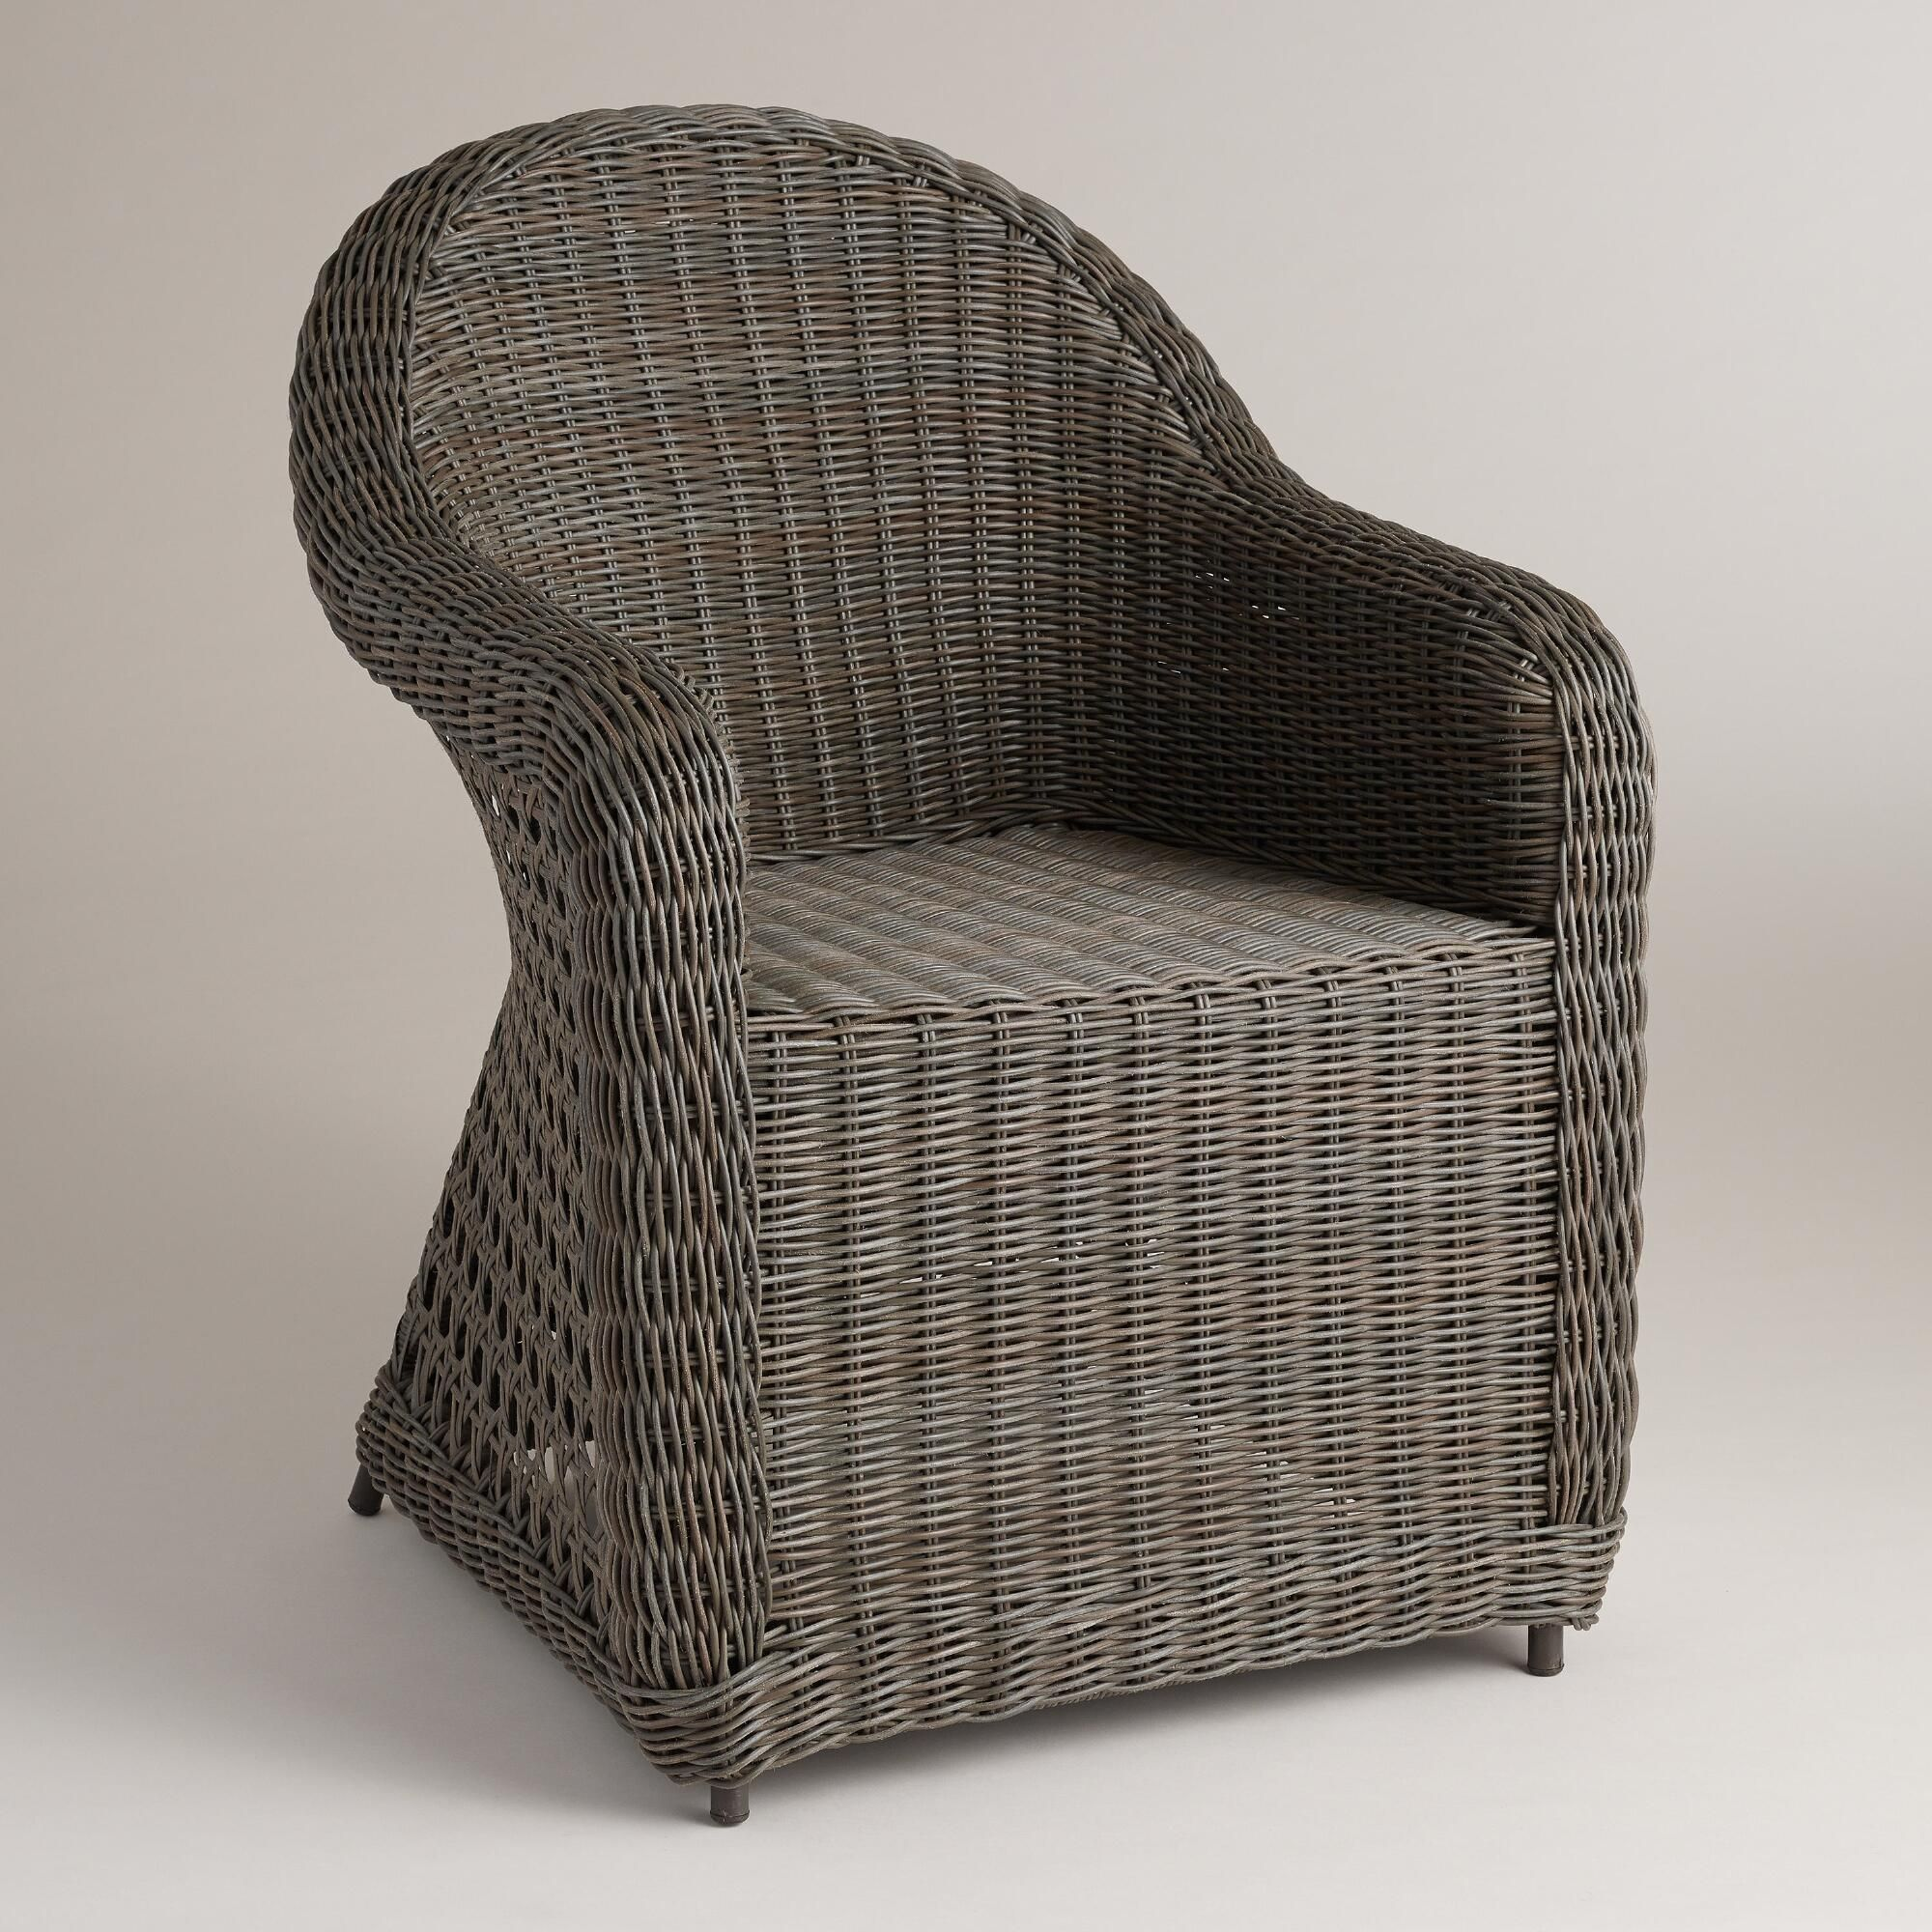 Comfortable Outdoor Chairs Finished In Distressed Gray For A Natural Wicker Look